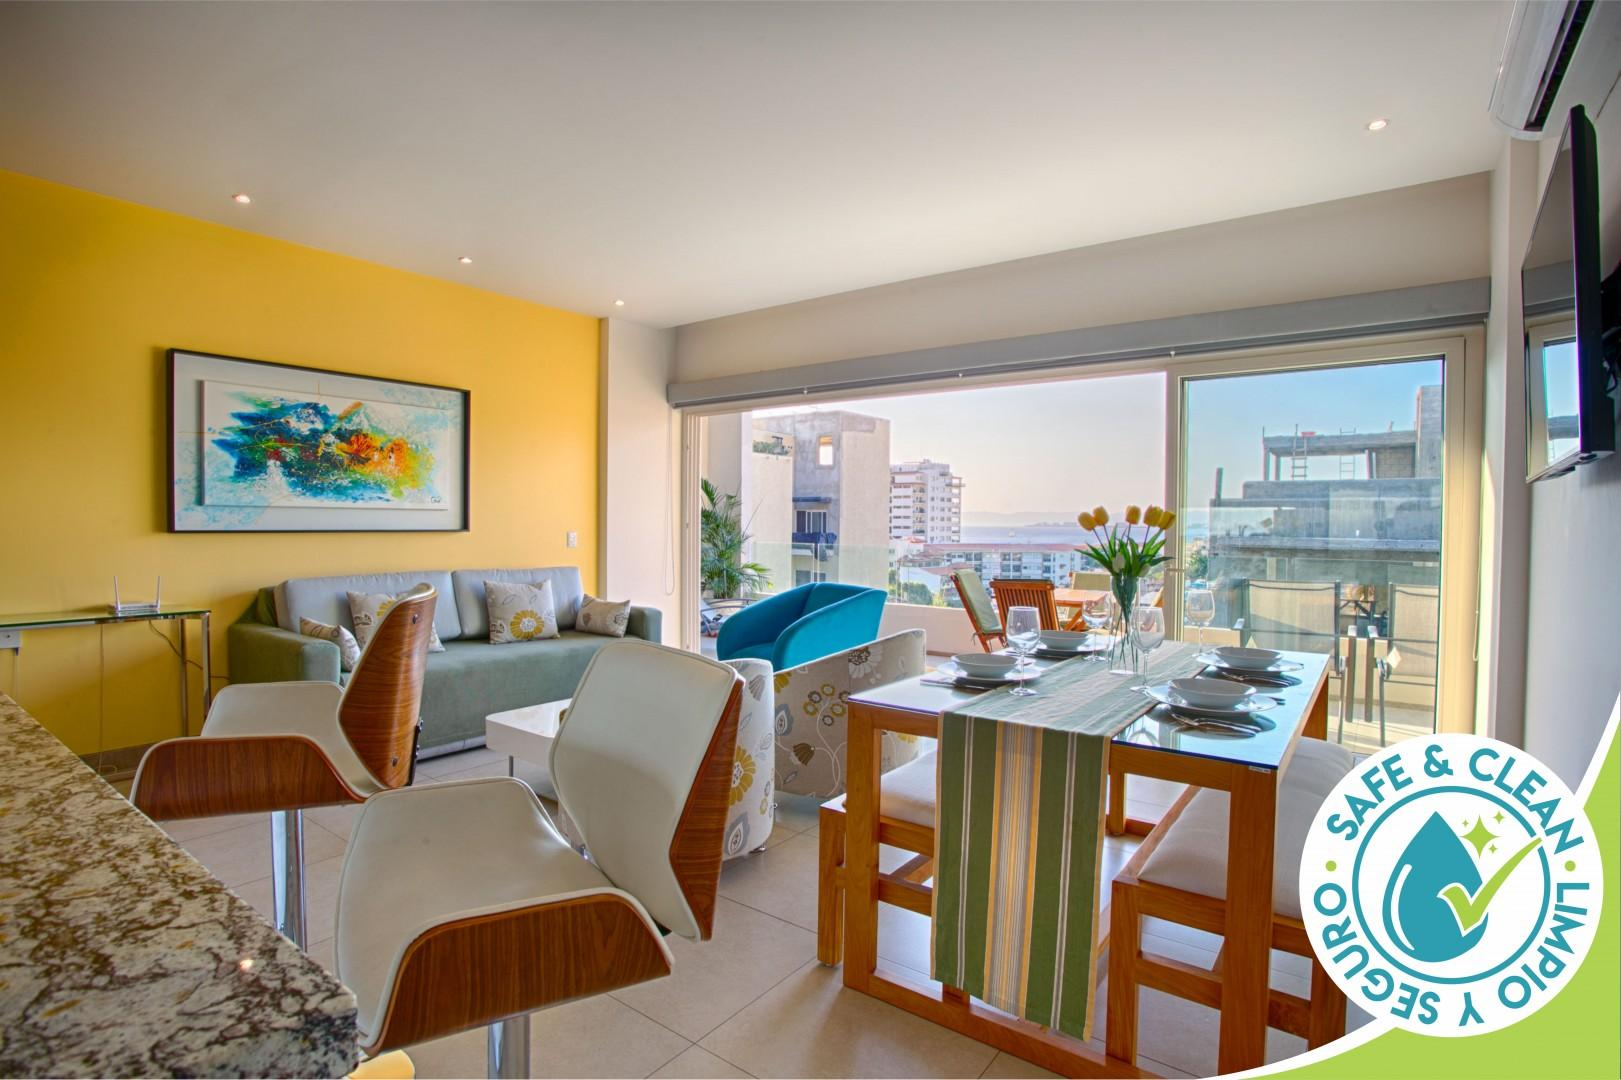 Top Floor Condo with City View, Rooftop Pool, Gym in Old Town